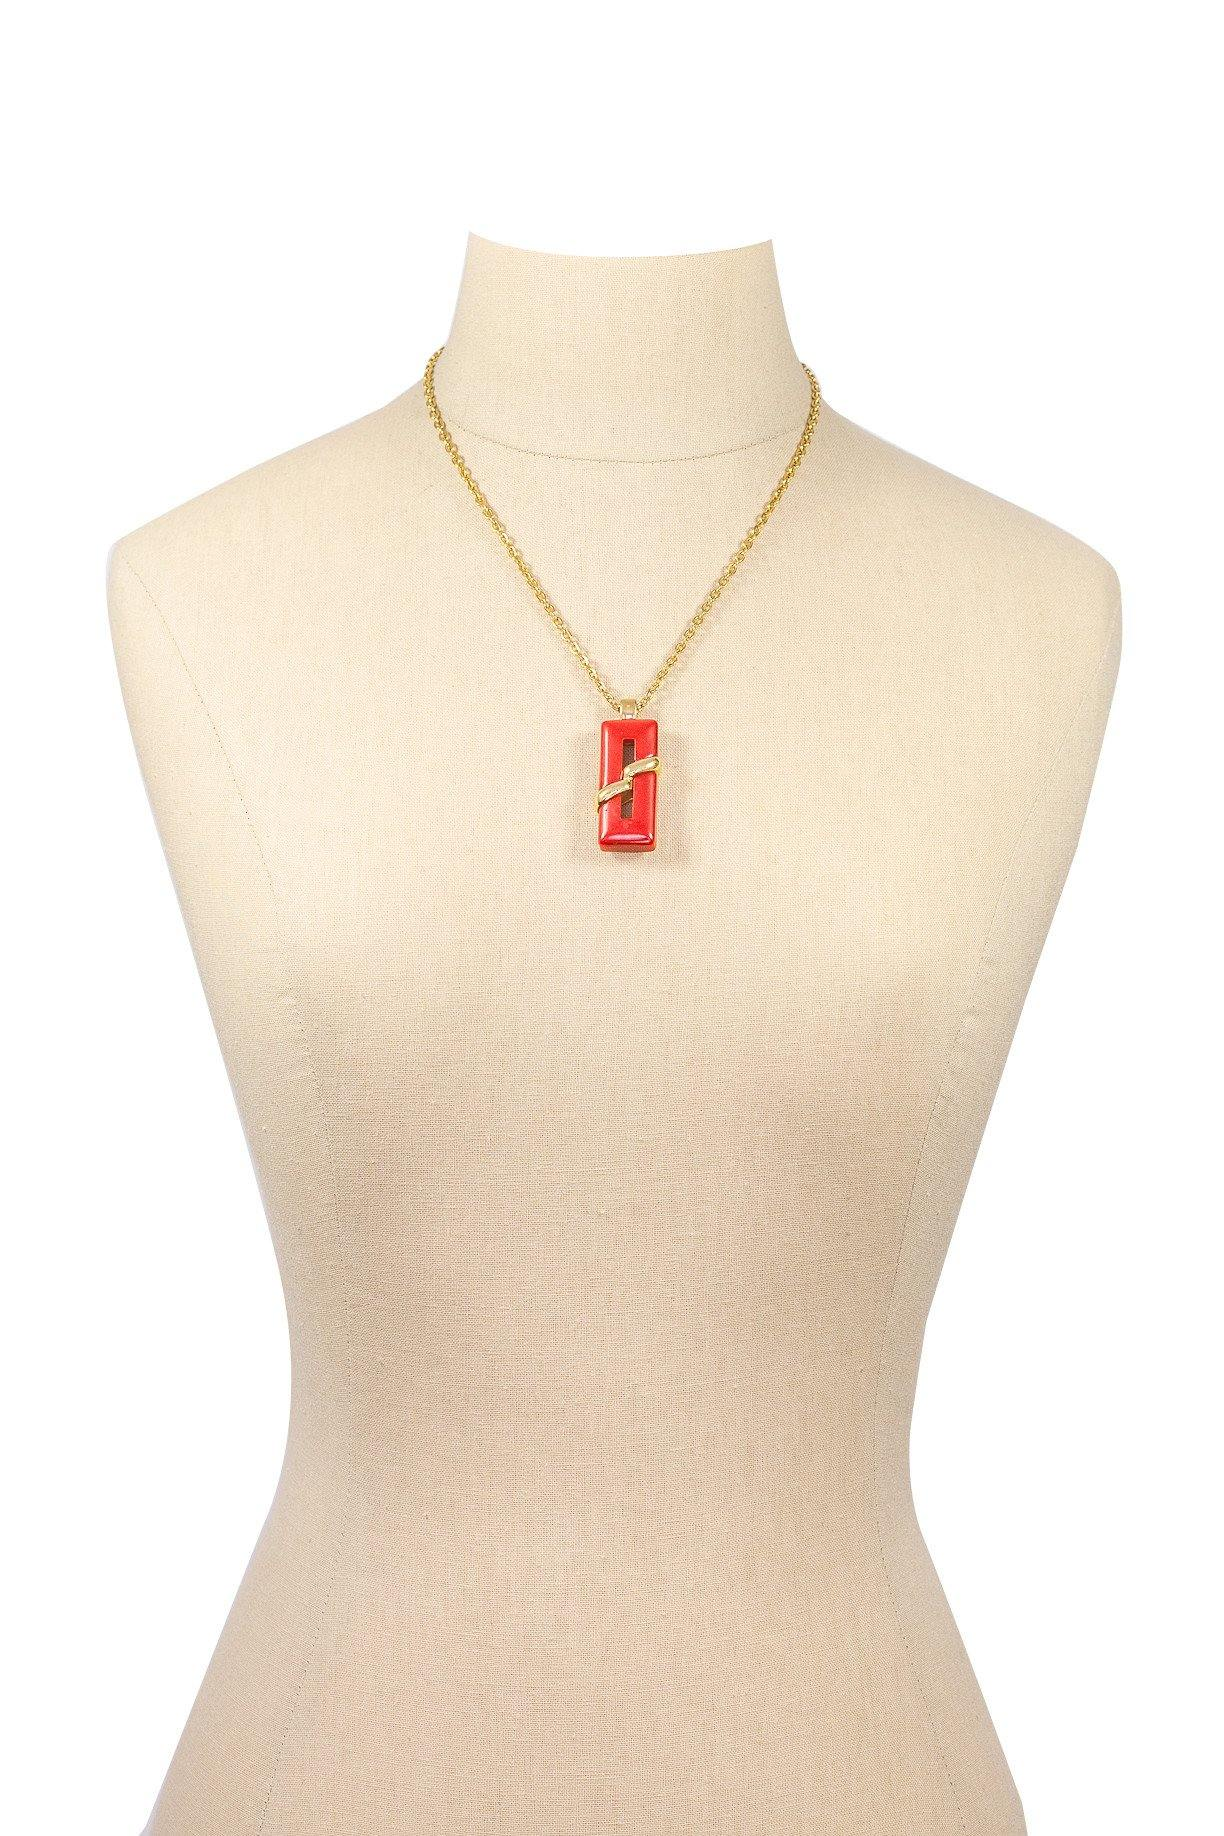 60's__Trifari__Pendant Necklace